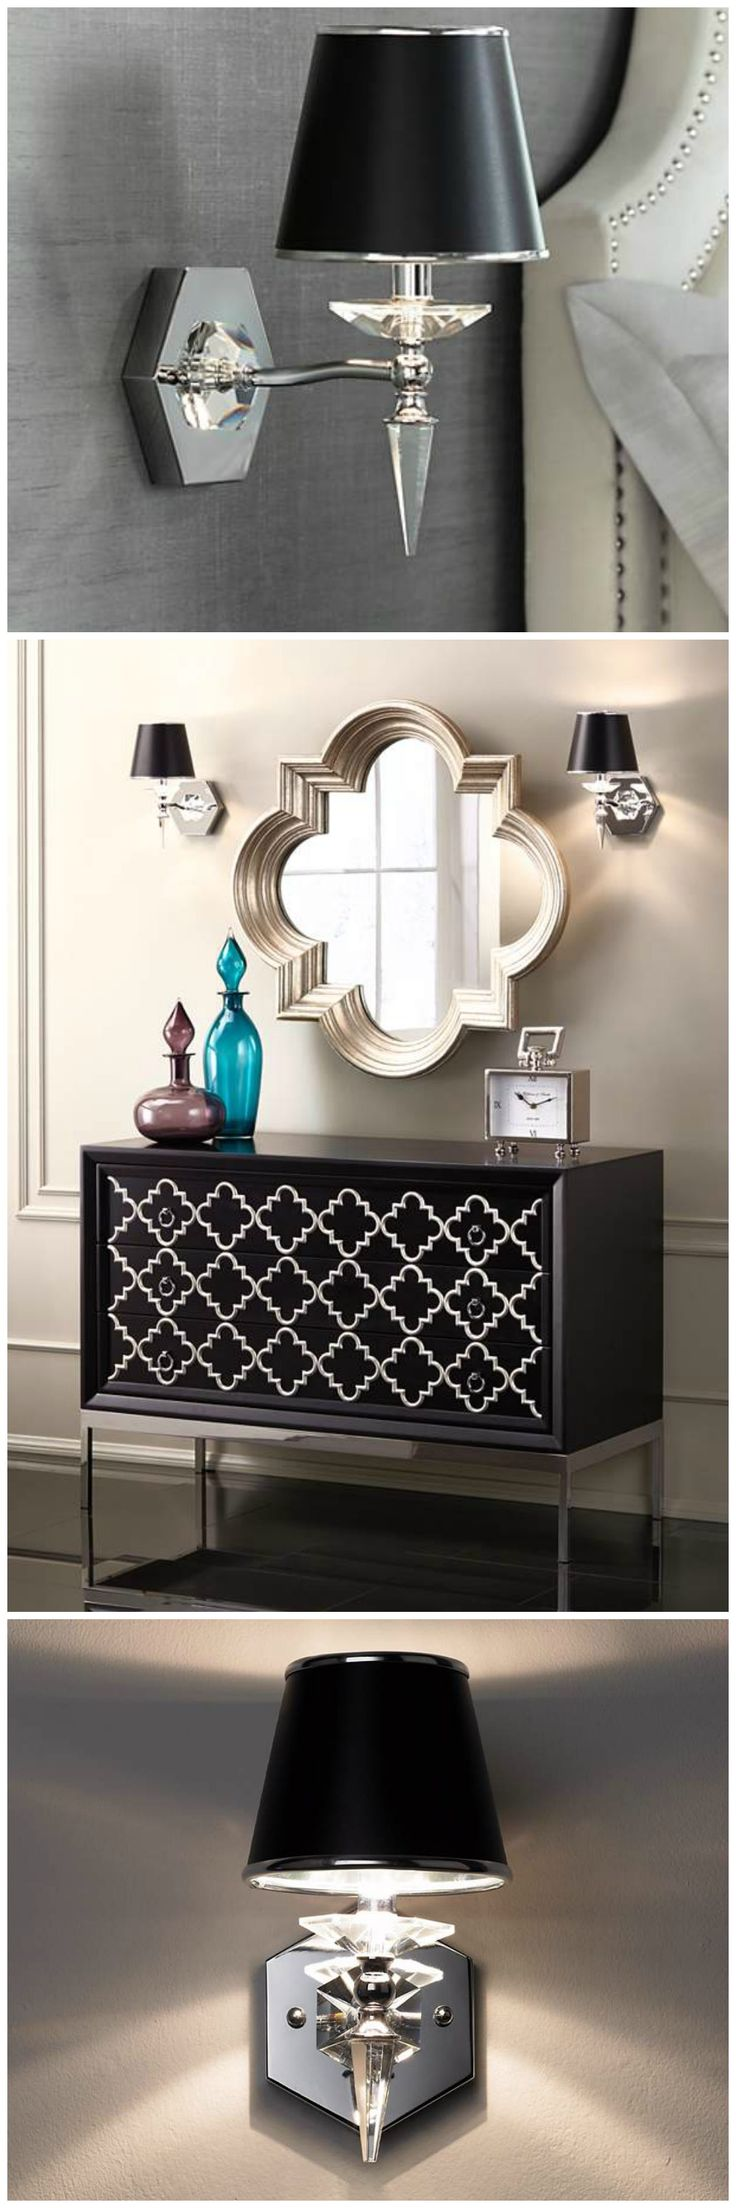 Chrome and crystal come together to bring your home a polished sparkle. A black paper shade with silver edging and lining tops off this transitional wall light sconce with a sophisticated sizzle.